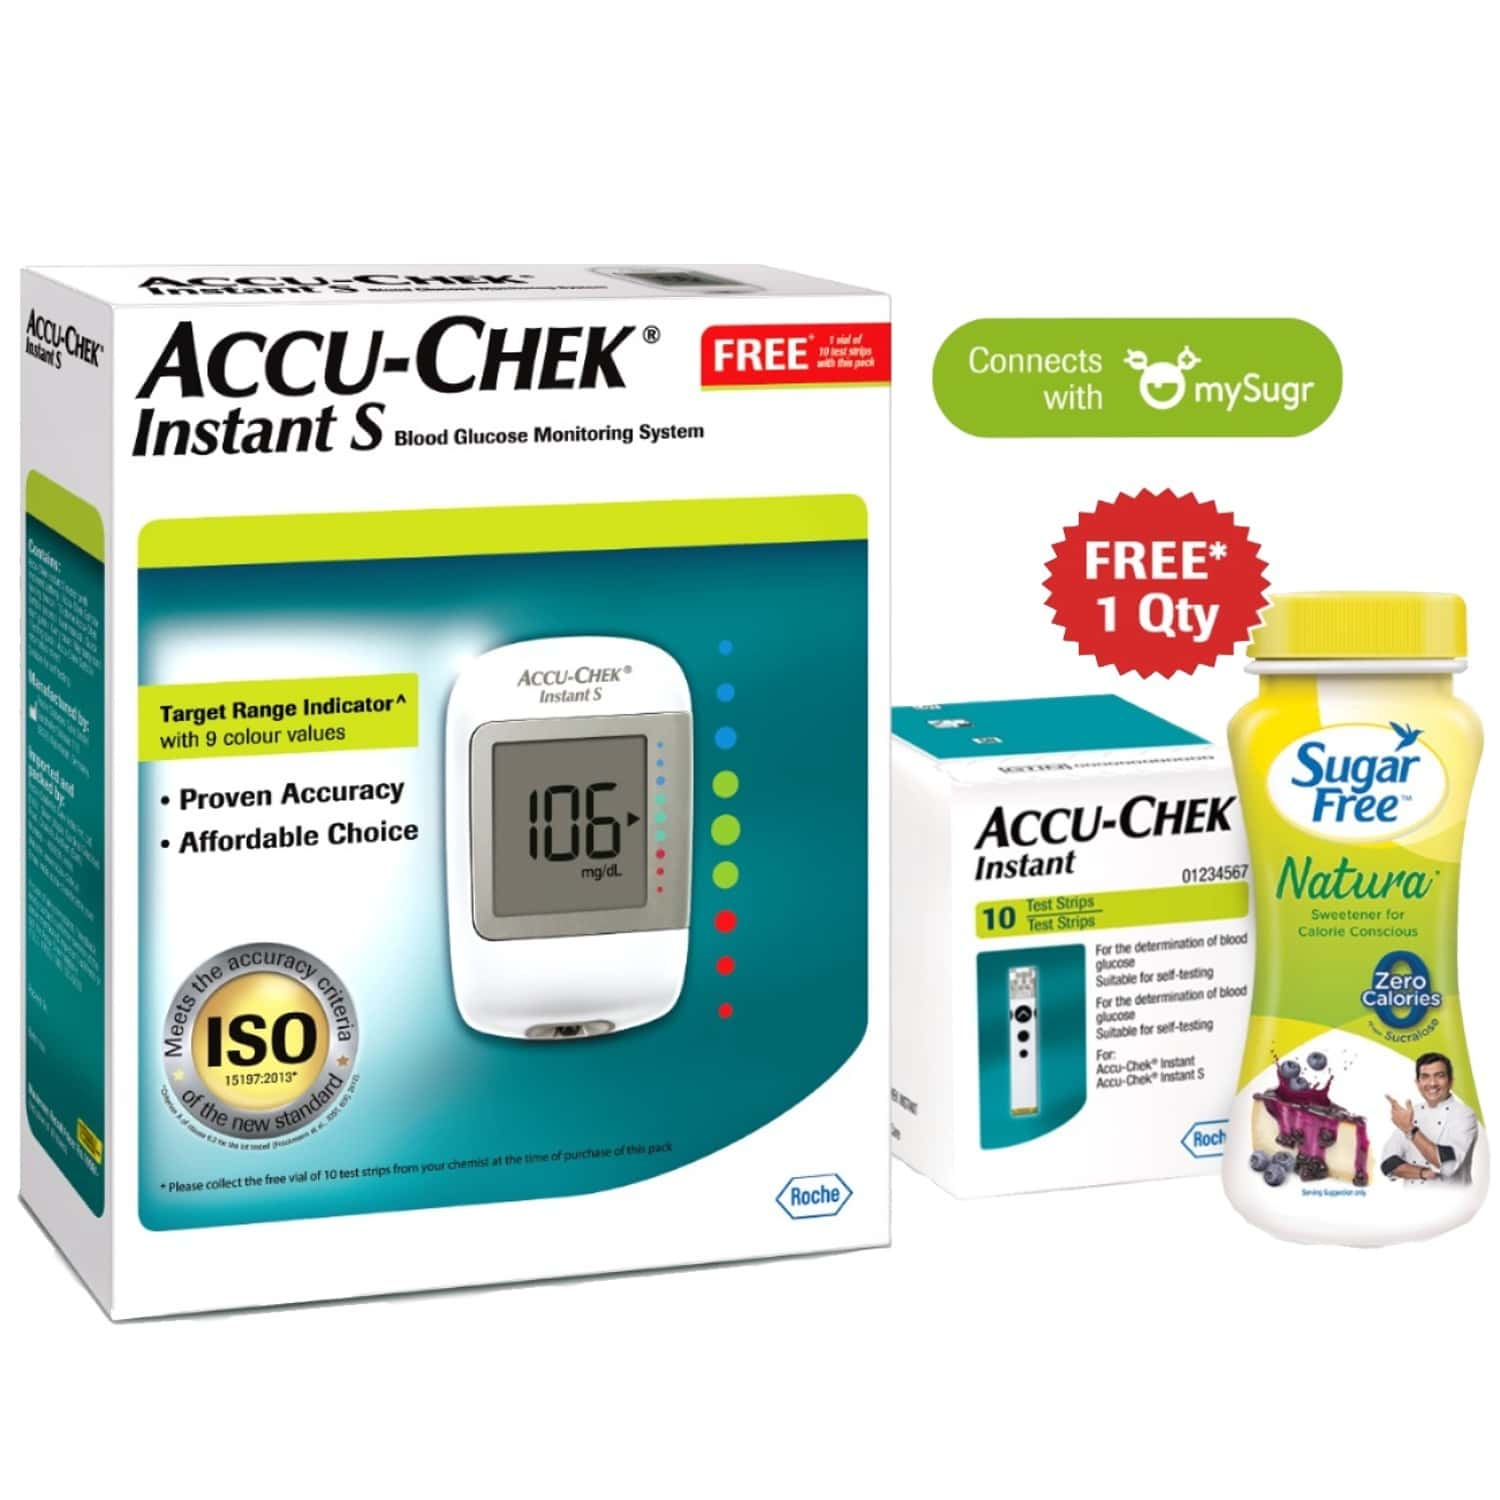 Accu-chek Instant S Glucometer & 10 Test Strips With Free Sugarfree